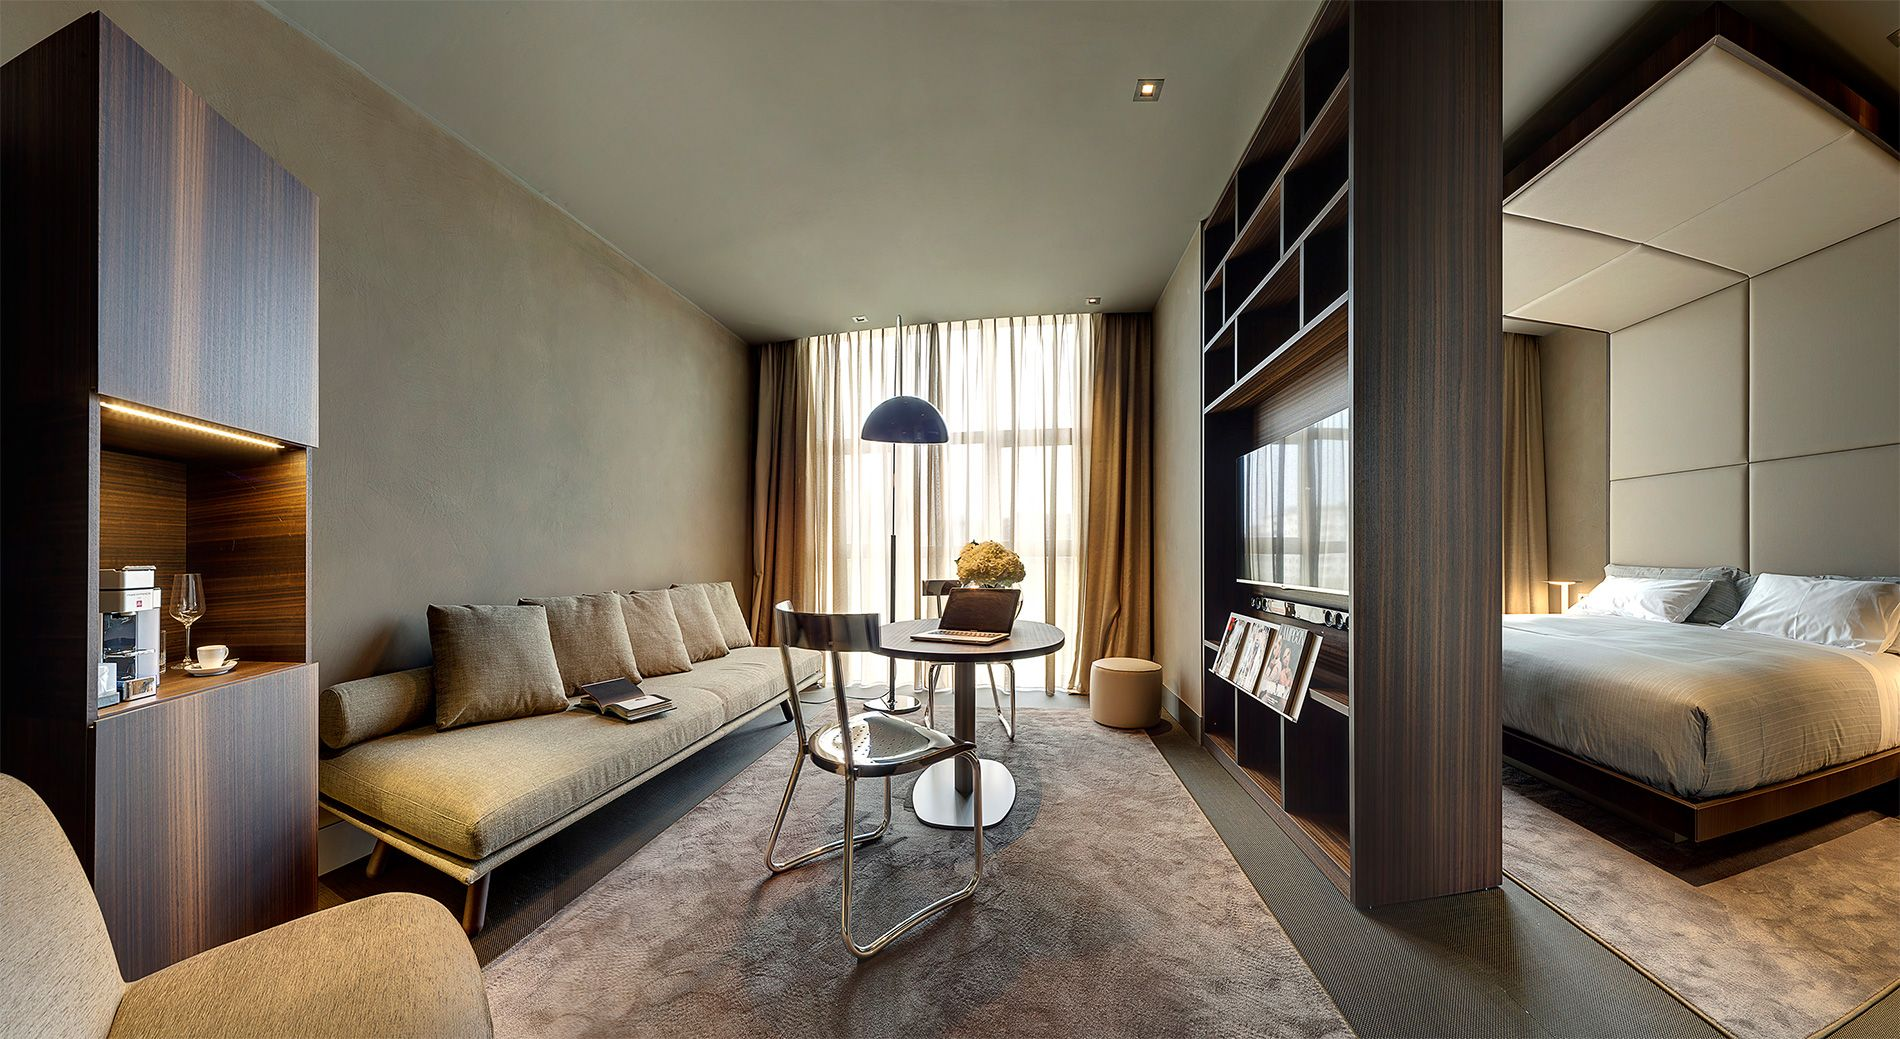 Meliá Hotels International Sds Up Growth In Indonesia With Its Thirth Hotel The Innside Bandung